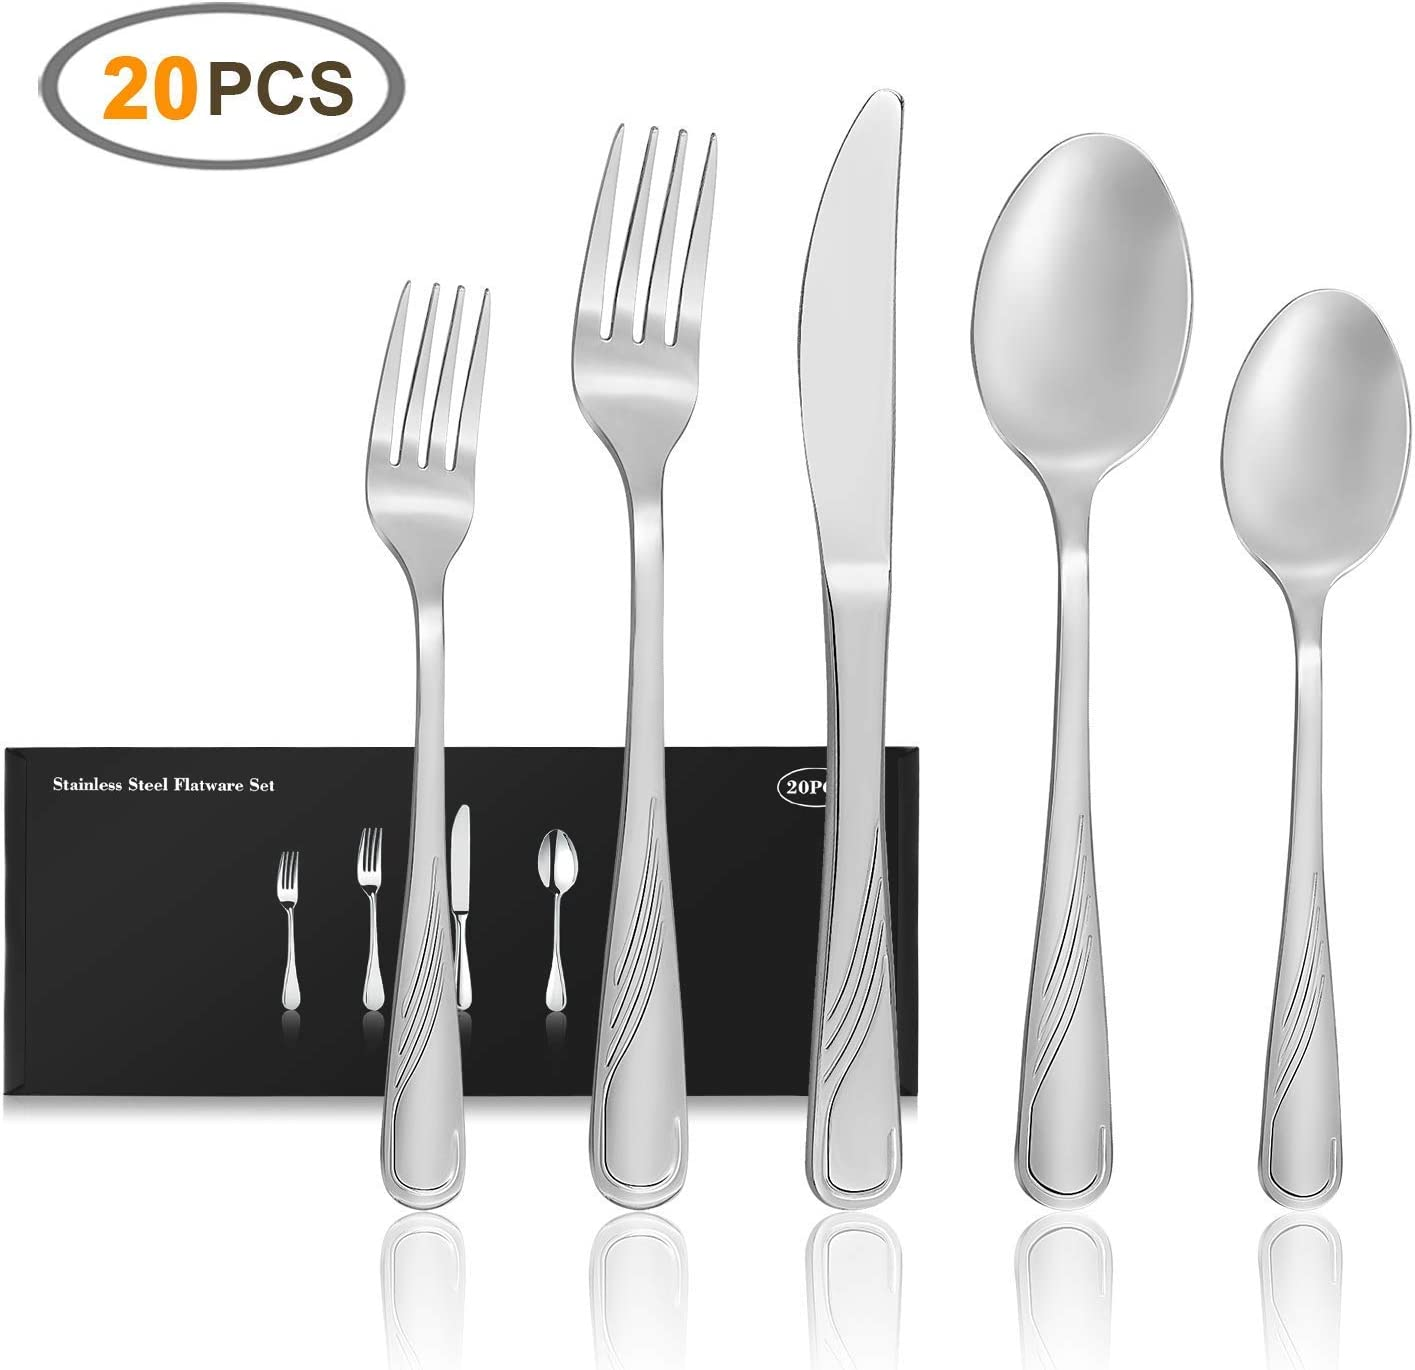 20-Piece Silverware Set, JOW Stainless Steel Flatware Set Service for 4, Tableware Cutlery Set for Home and Restaurant, Knives Forks Spoons, Mirror Polished, Dishwasher Safe (Silver)